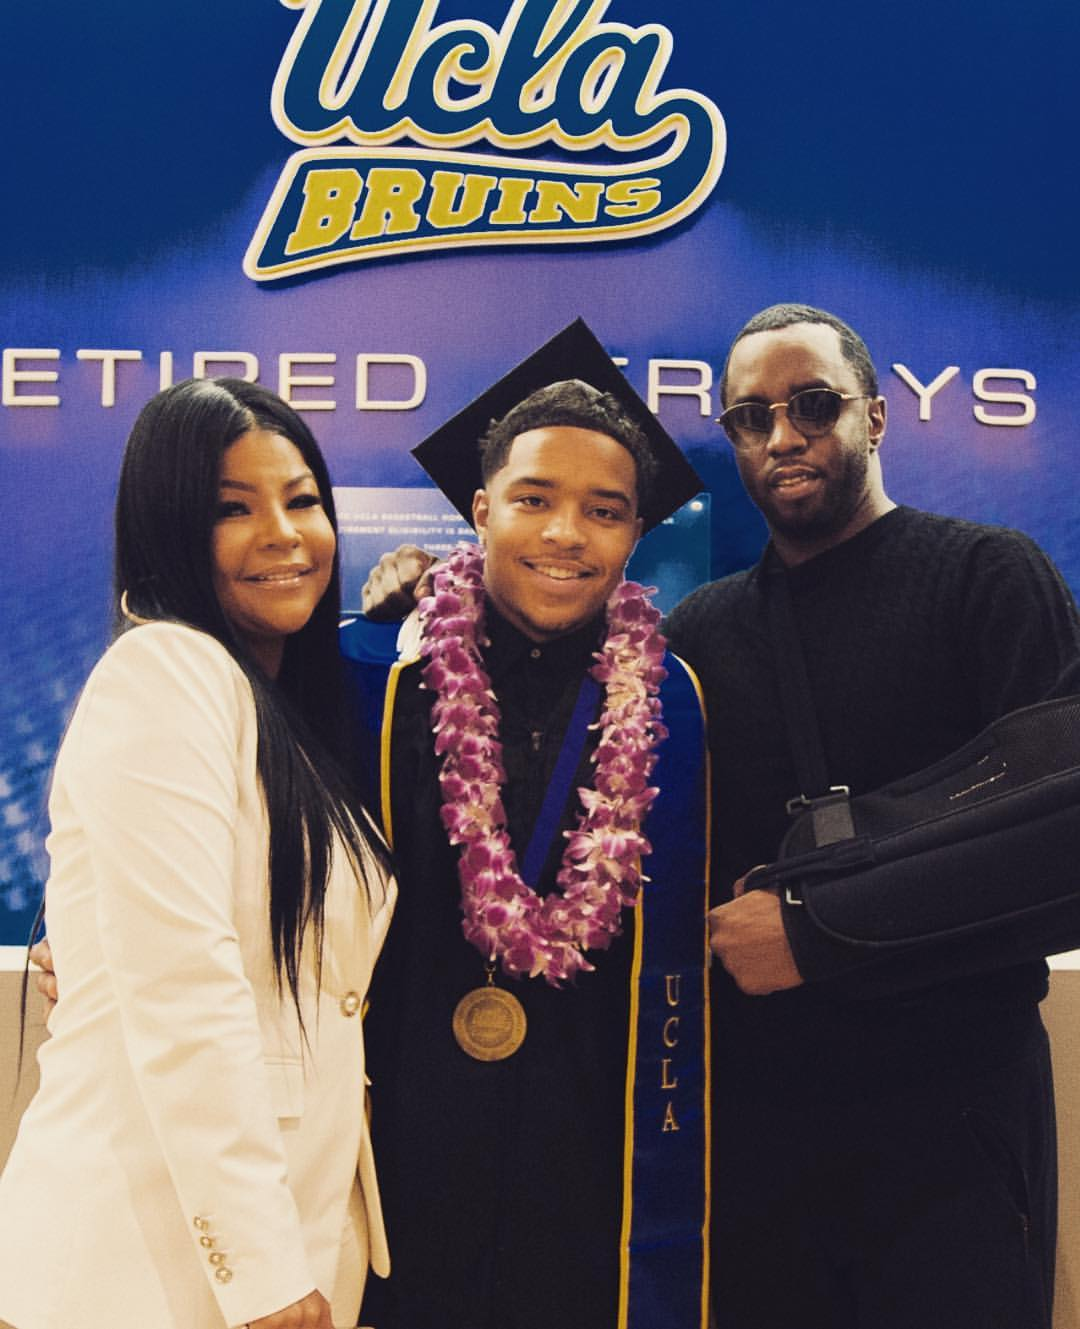 ody sblog first graduate of the combs rapper and mogul diddy s son justin combs has graduated from college he attended ucla on american football scholarship his proud dad real sea combs